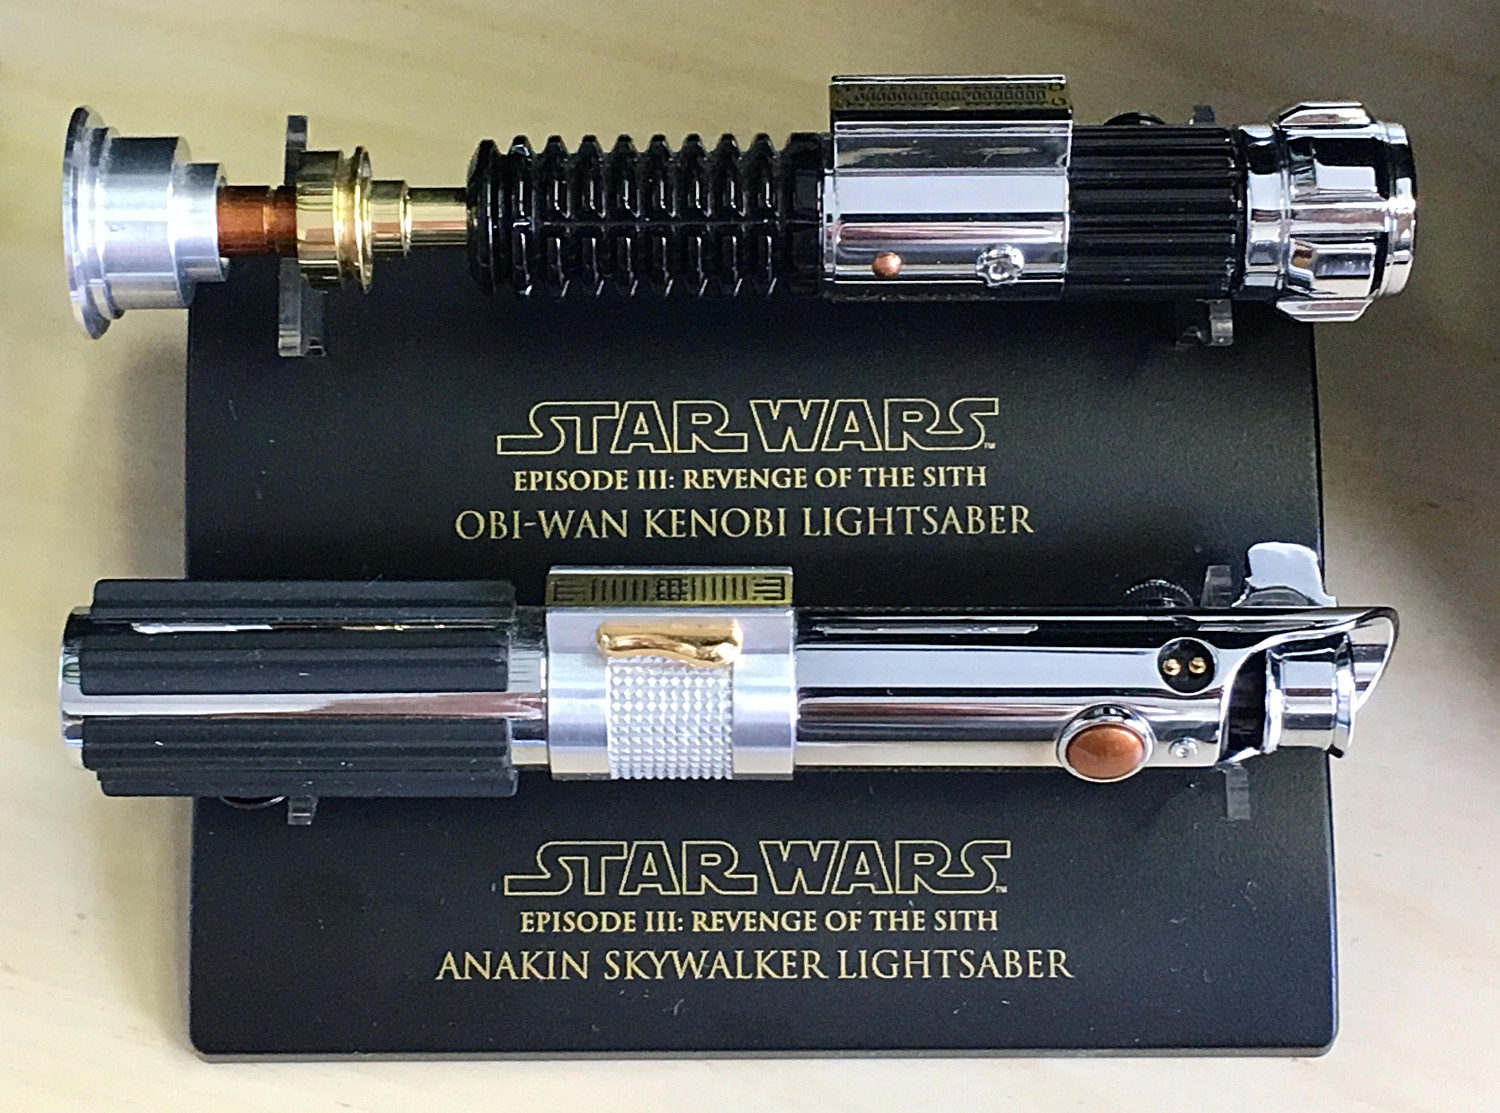 Found my Master Replicas 0.45 lightsabers at the MIL\'s place over the holidays!